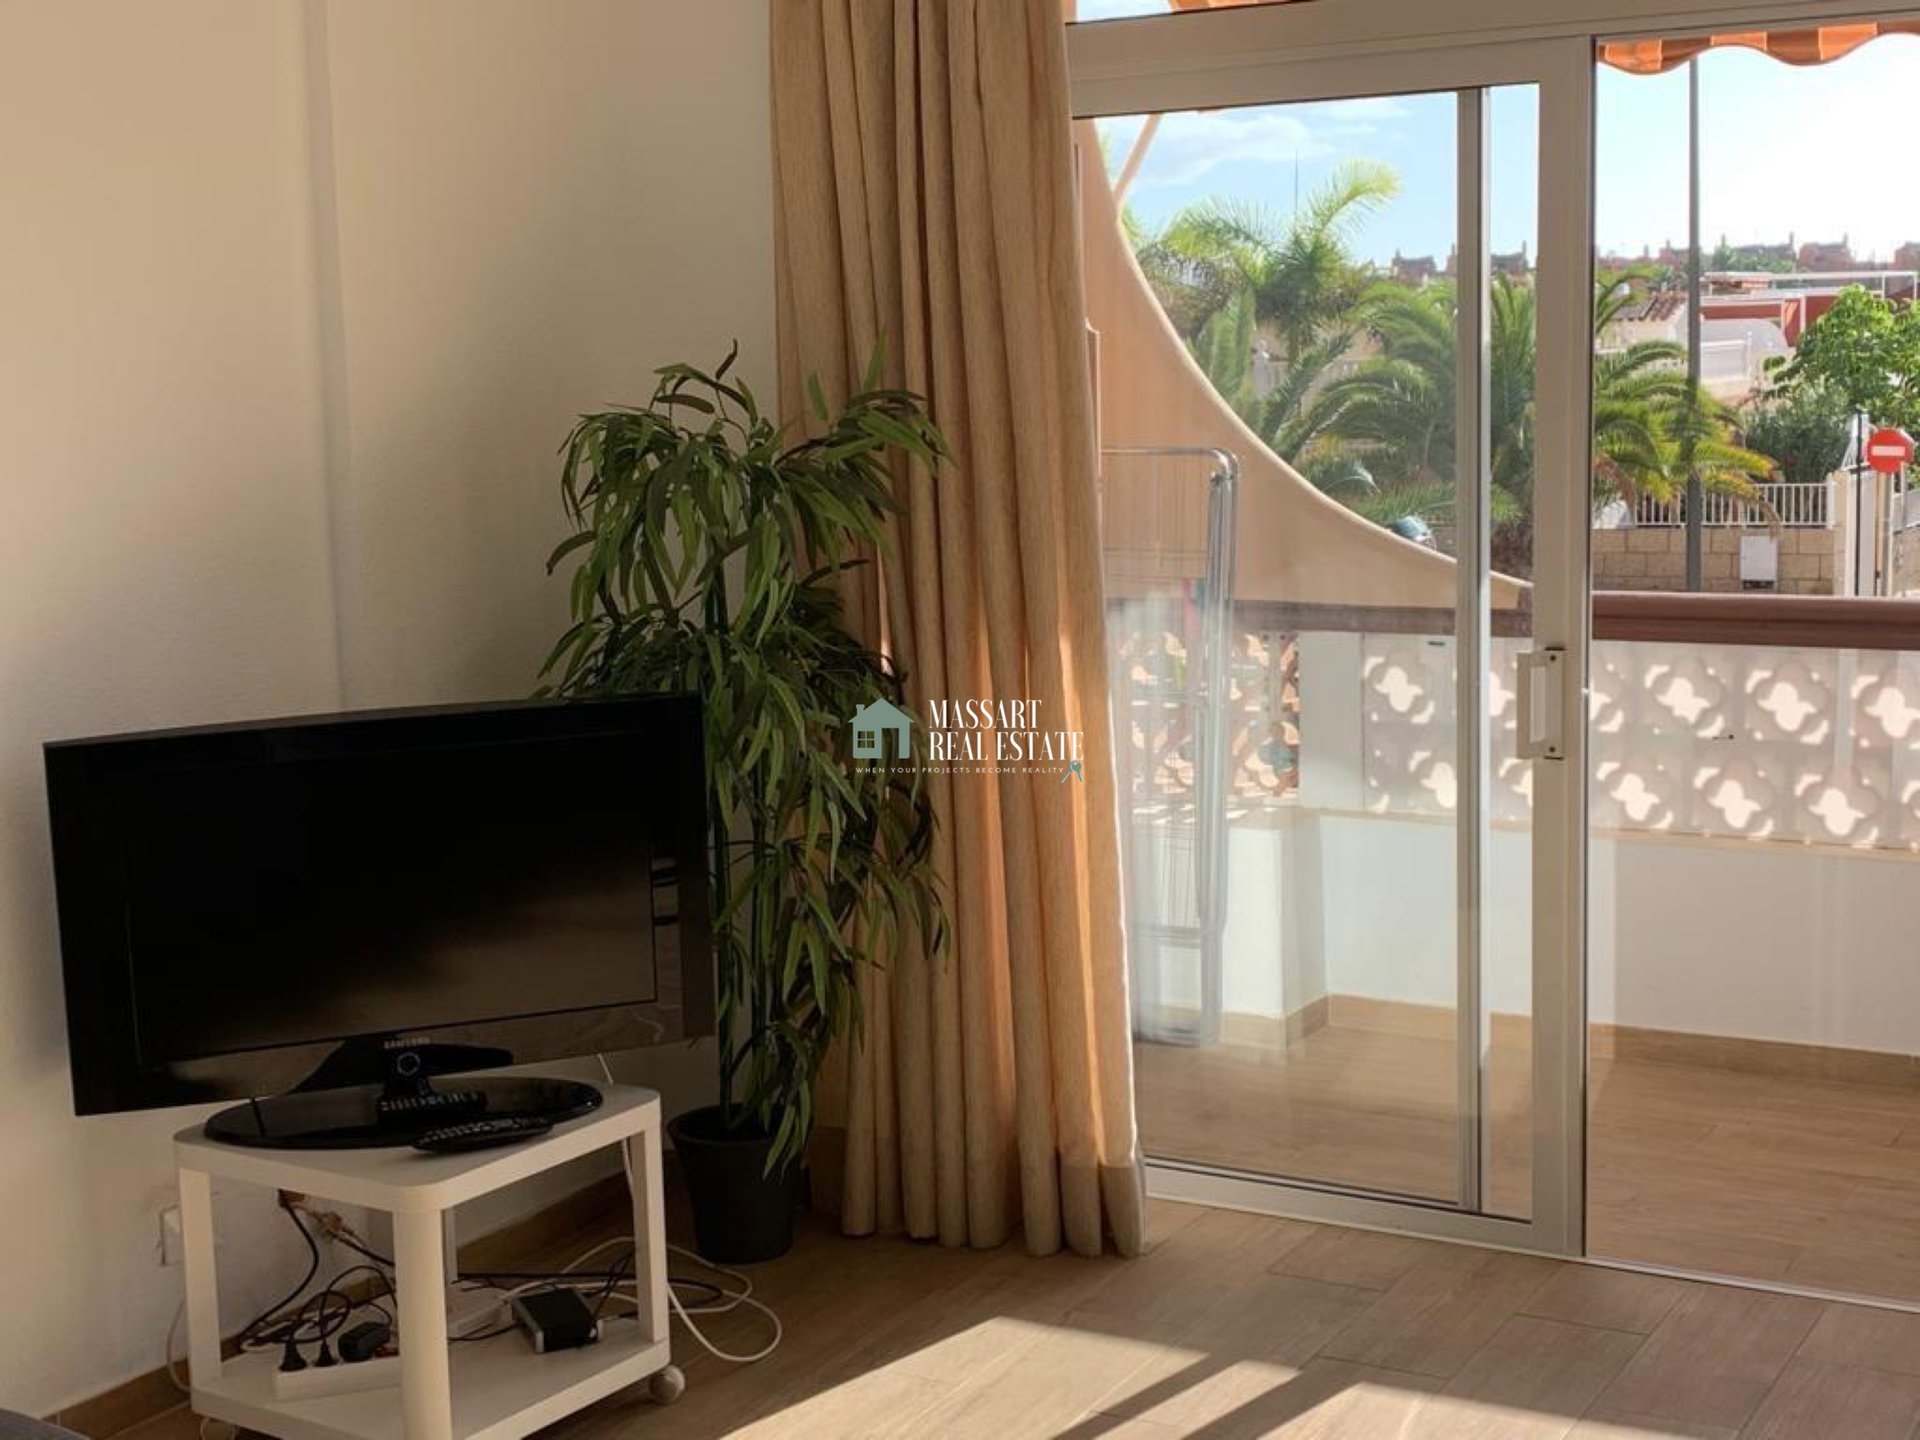 For sale in Palm-Mar, in Flamingo residential complex, 56 m2 furnished apartment in very good condition.